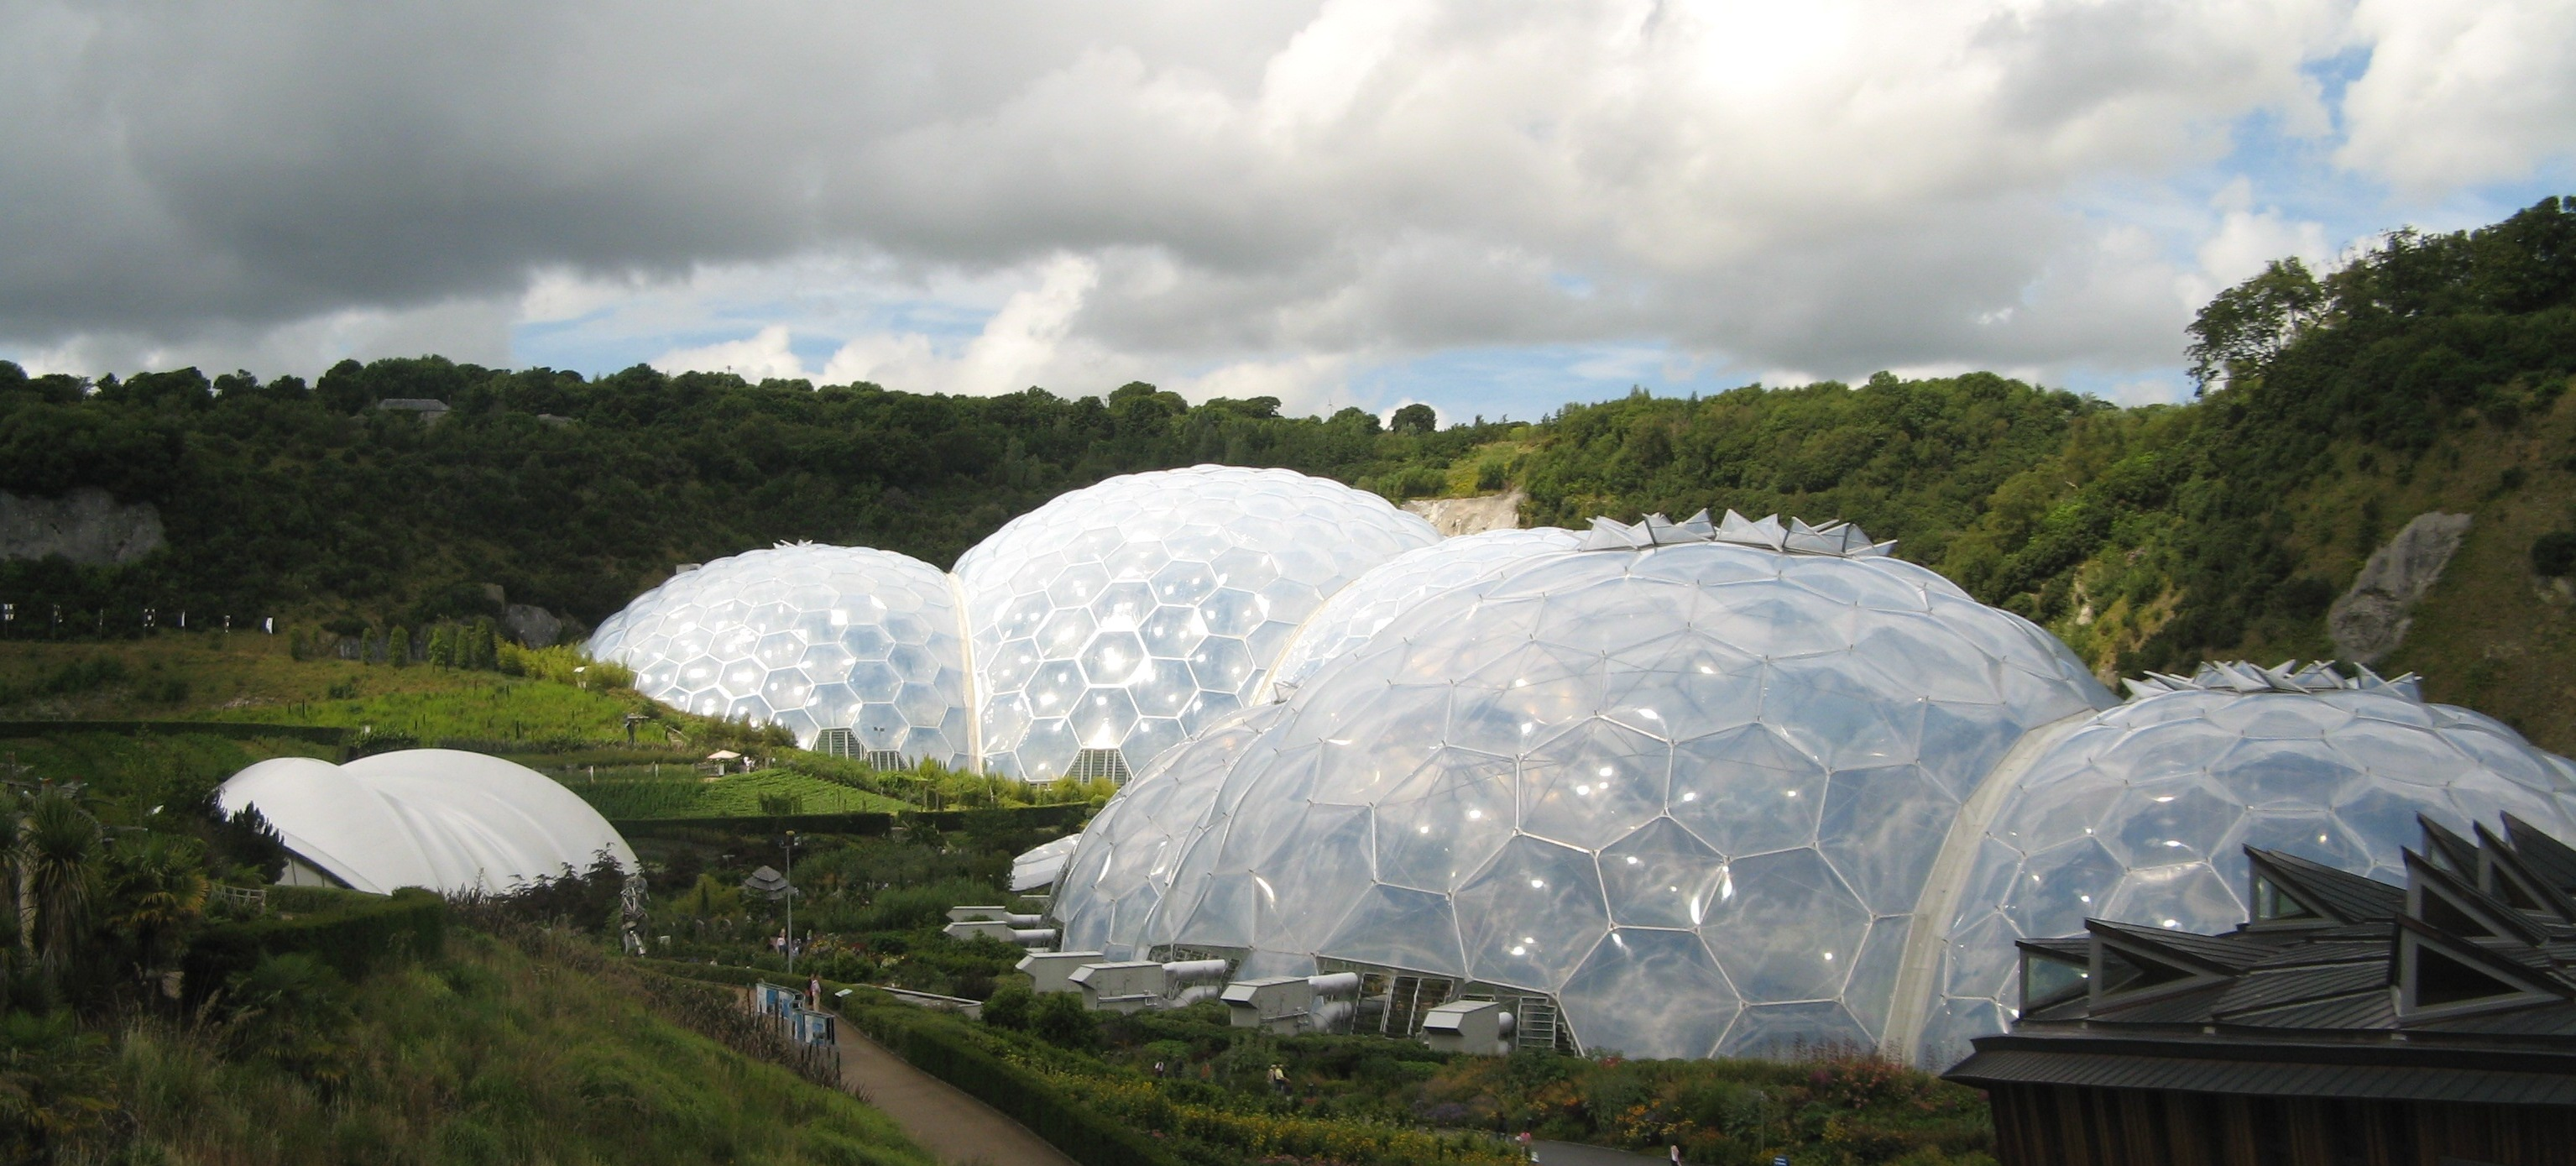 A visit to the Eden Project (1)